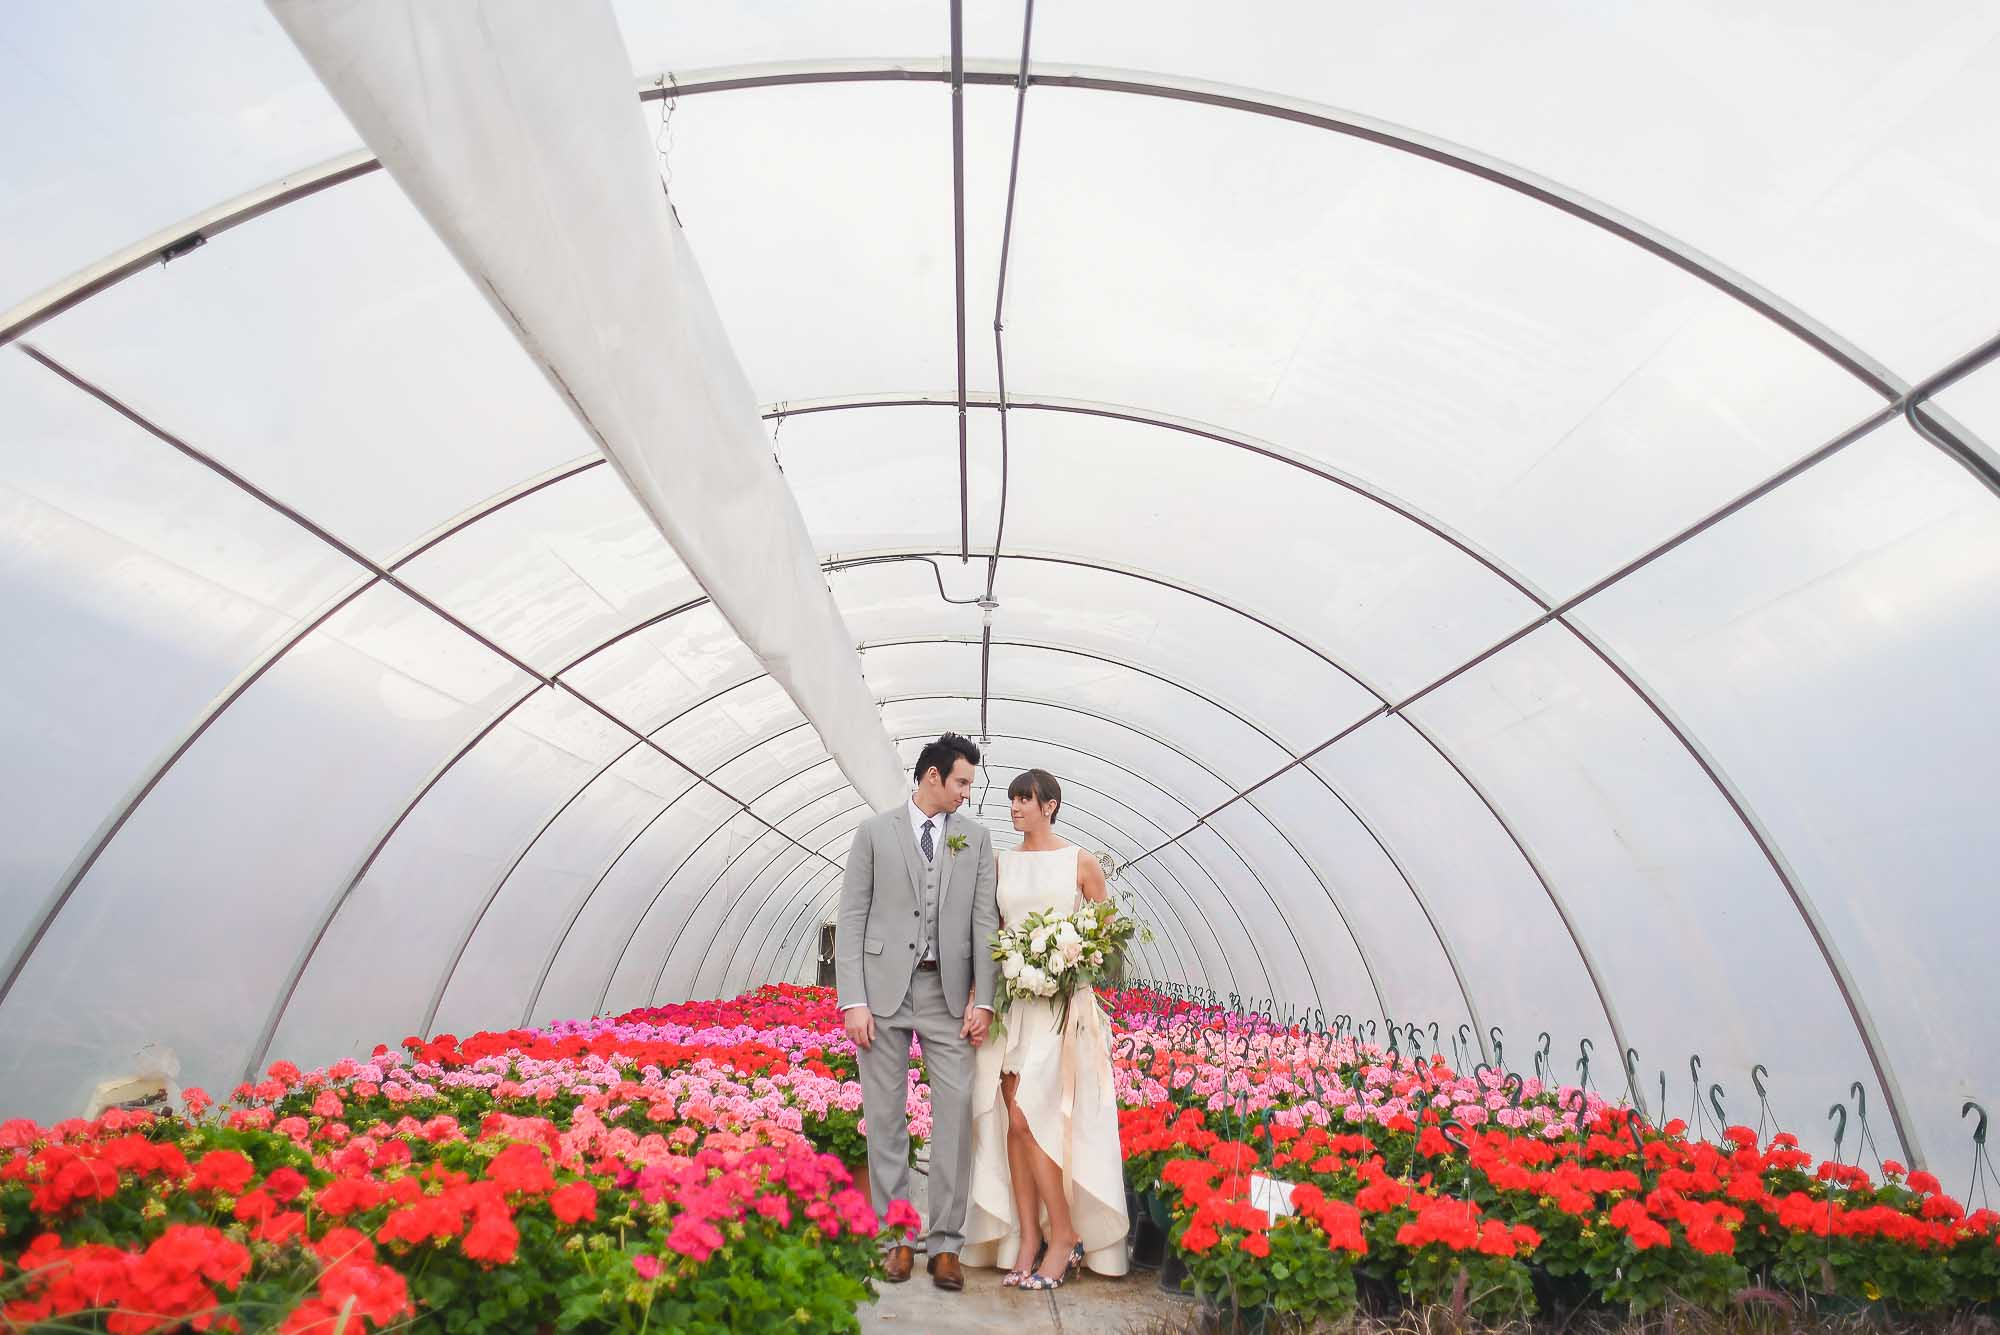 Bride and groom in greenhouse